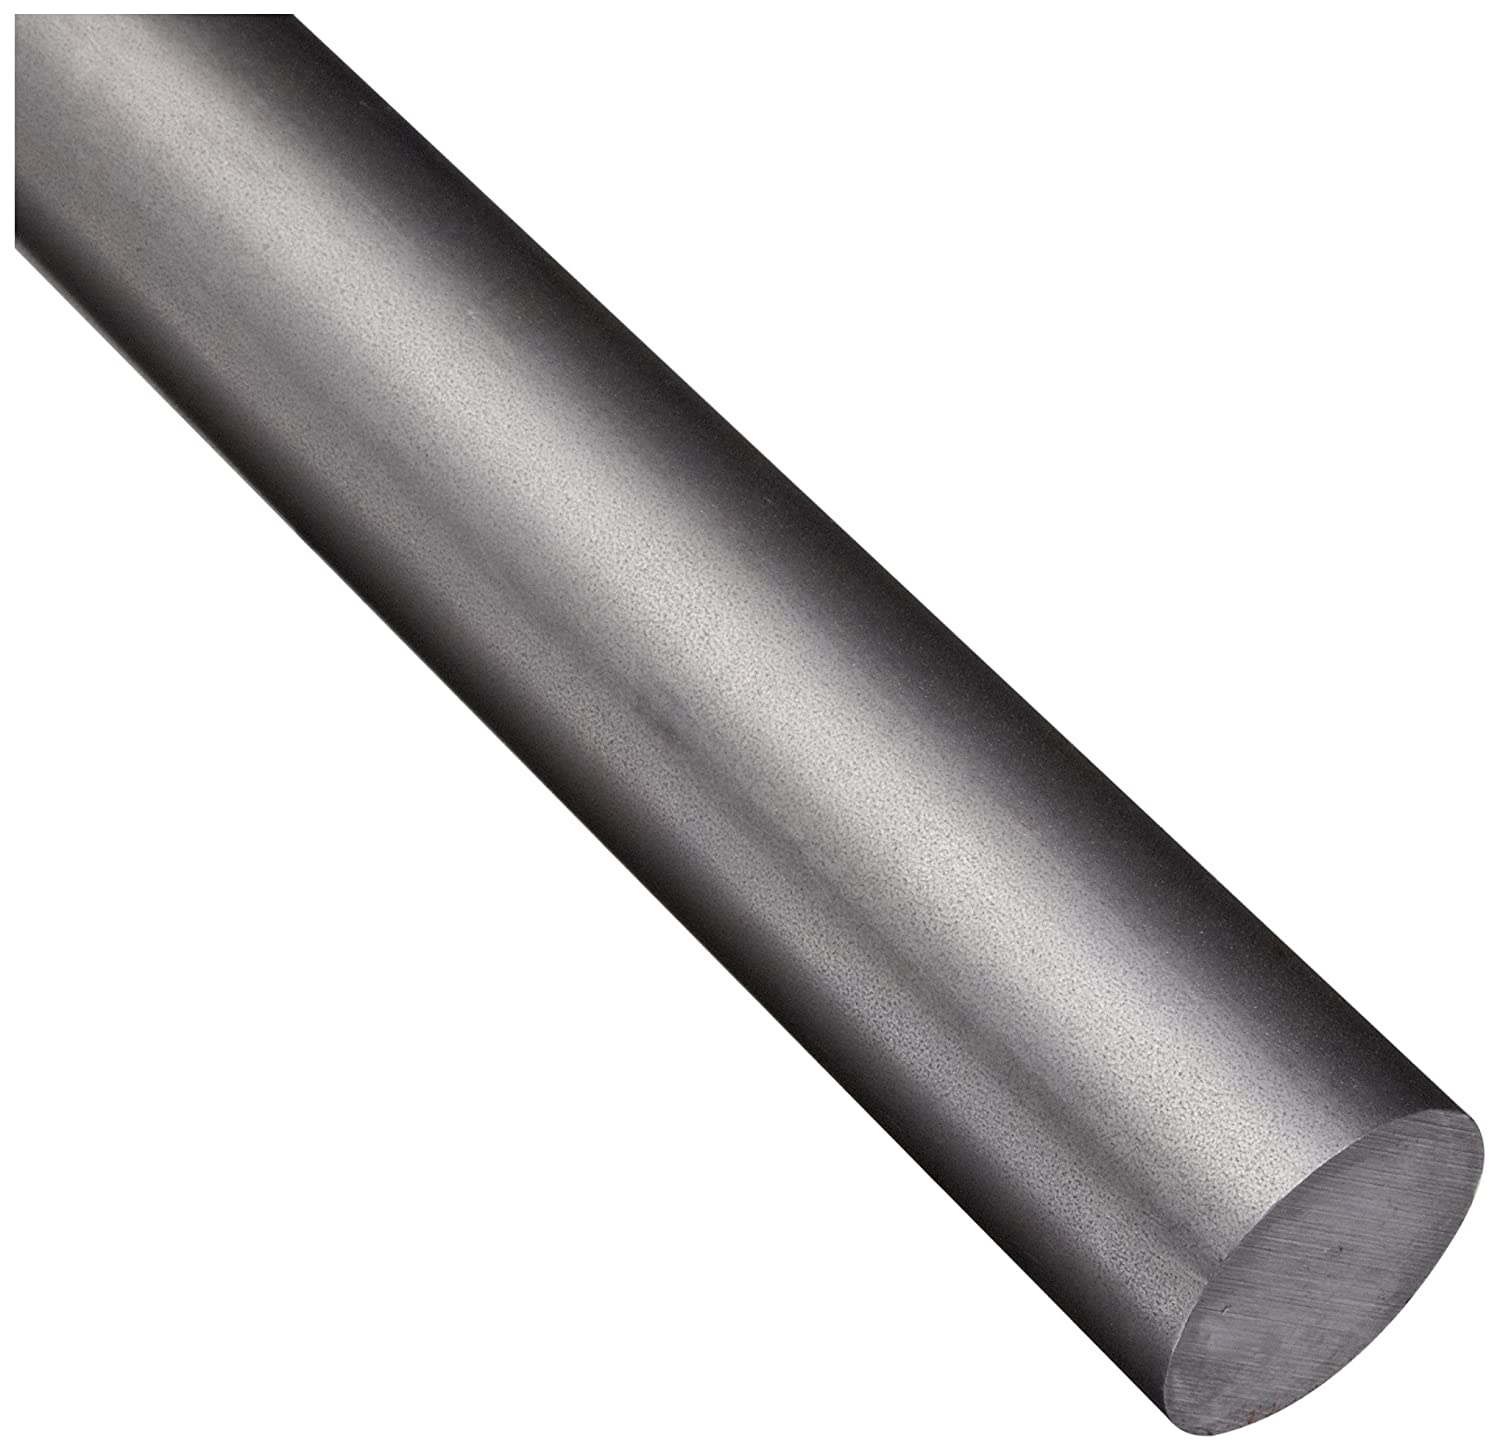 Unpolished Mill 1018 Carbon Steel Round Rod ASTM A108 60 Length 1.75 Diameter Cold Finished Temper Finish